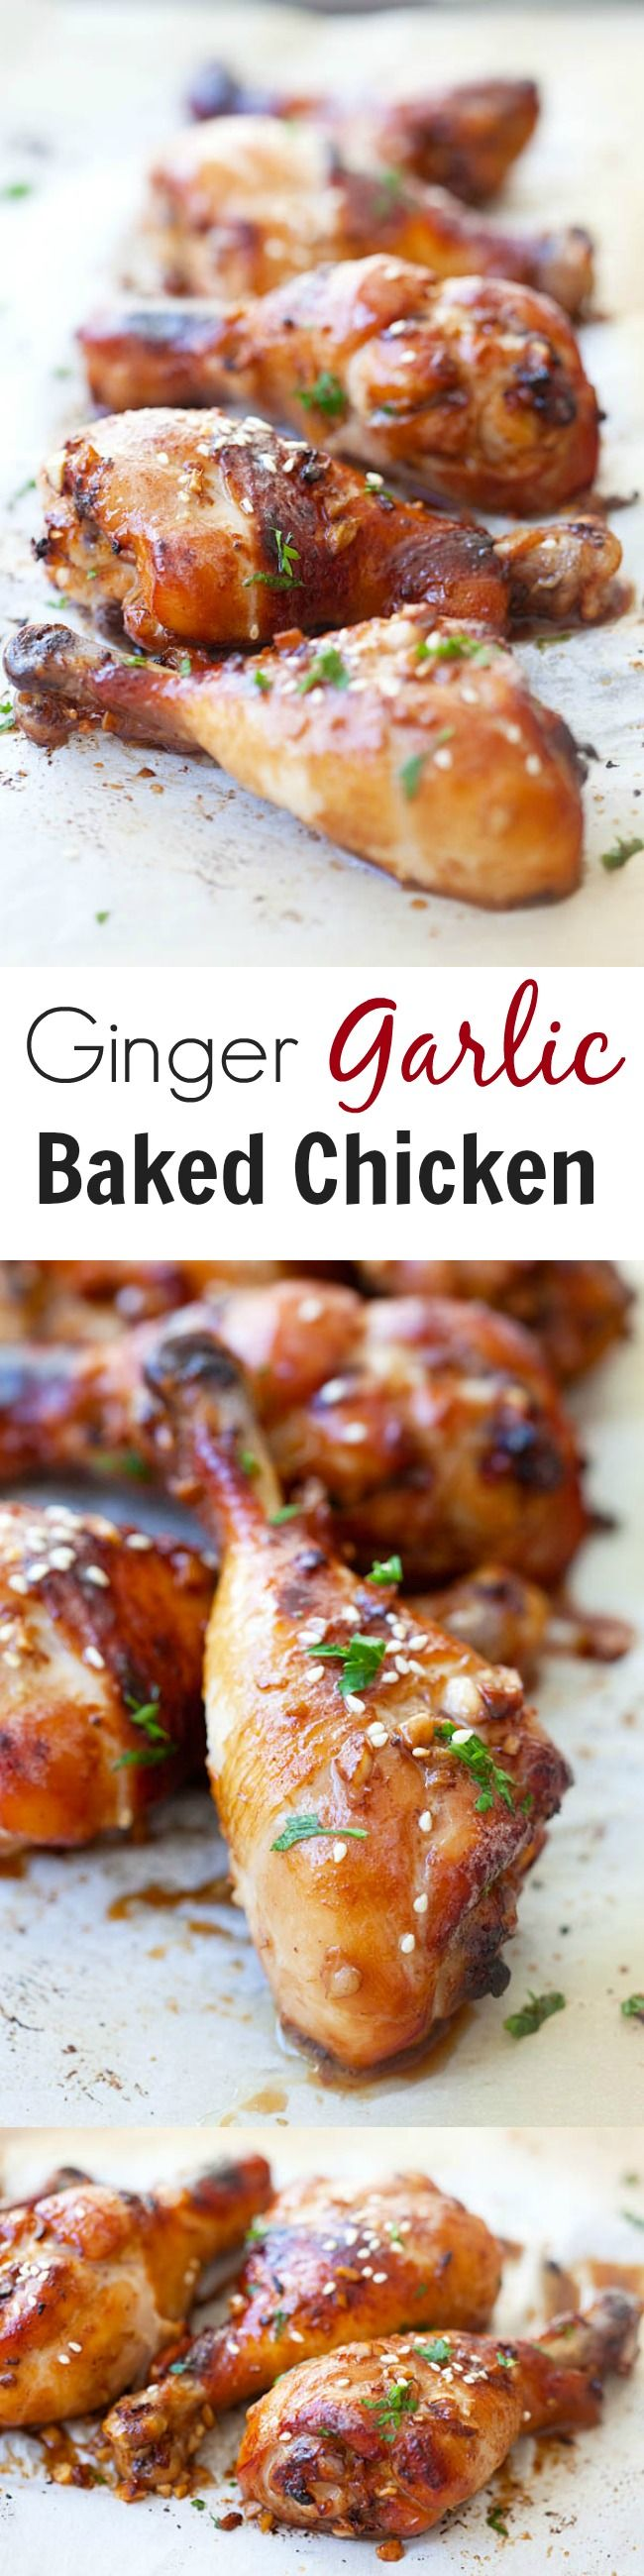 Ginger Garlic Baked Chicken